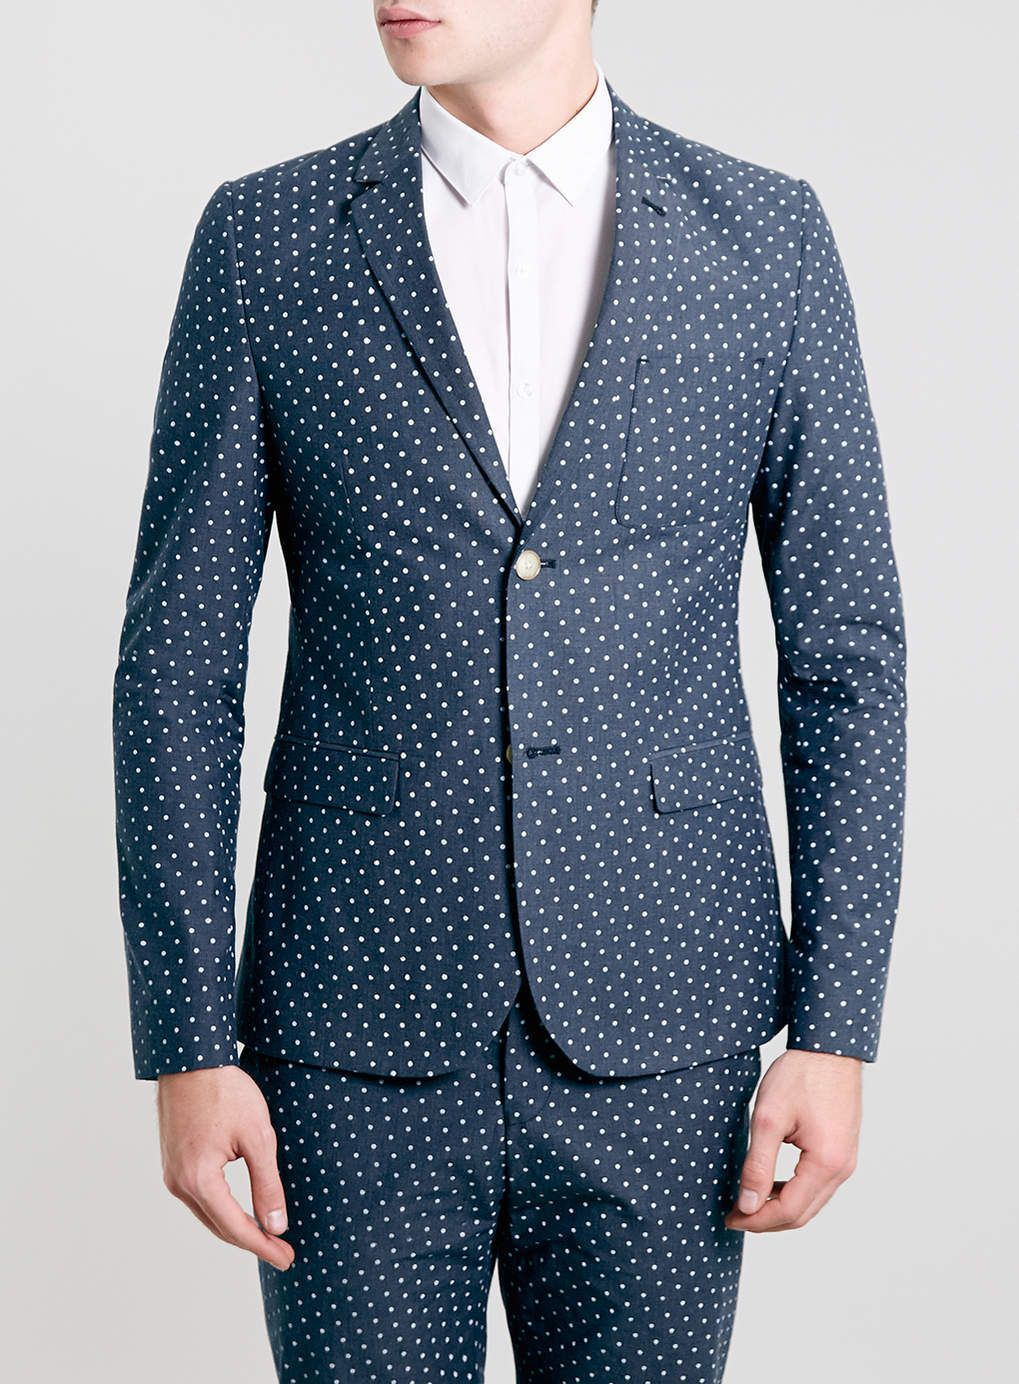 Forum on this topic: Topman: It's More Than Just A Suit' , topman-its-more-than-just-a-suit/